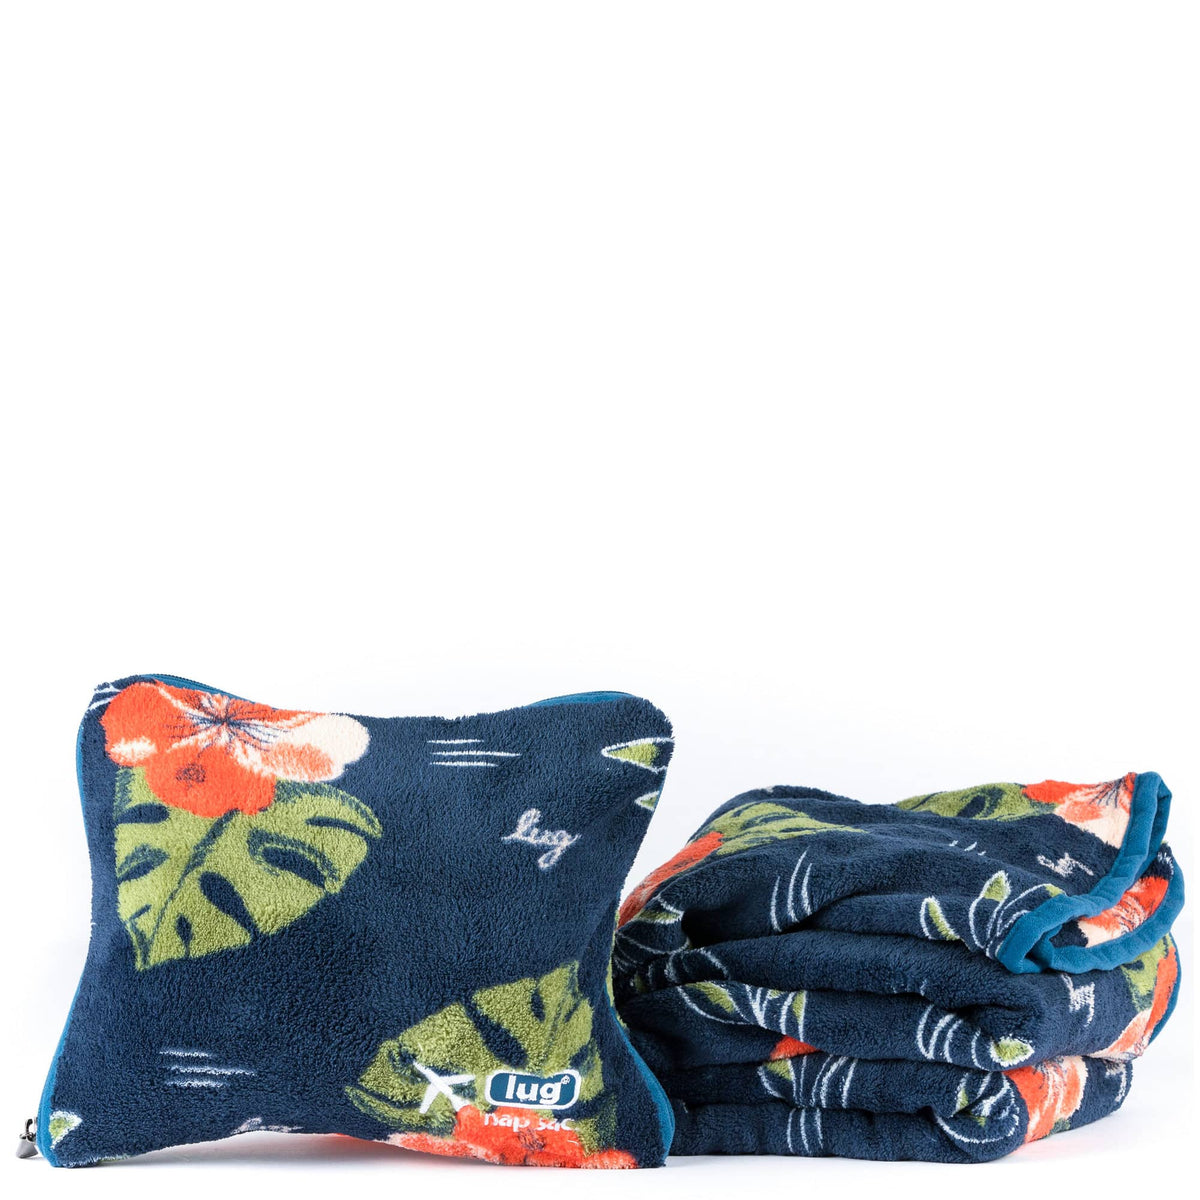 Nap Sac Blanket & Pillow Travel Set